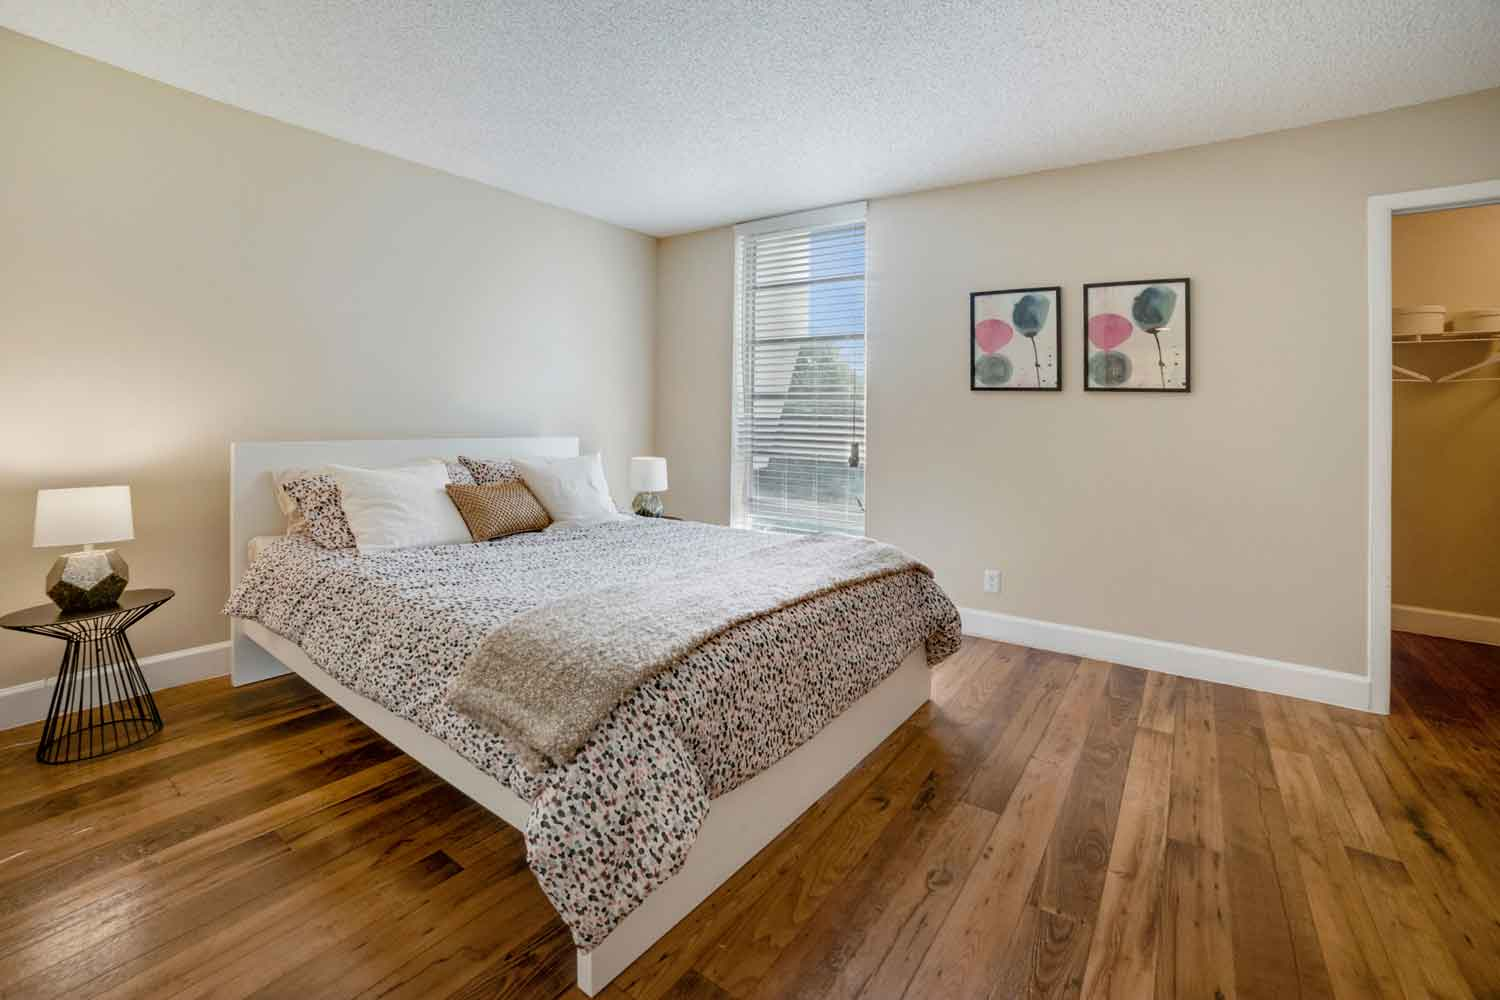 1 and 2-Bedroom Apartments at Nottingham Pine Apartments in Plantation, FL